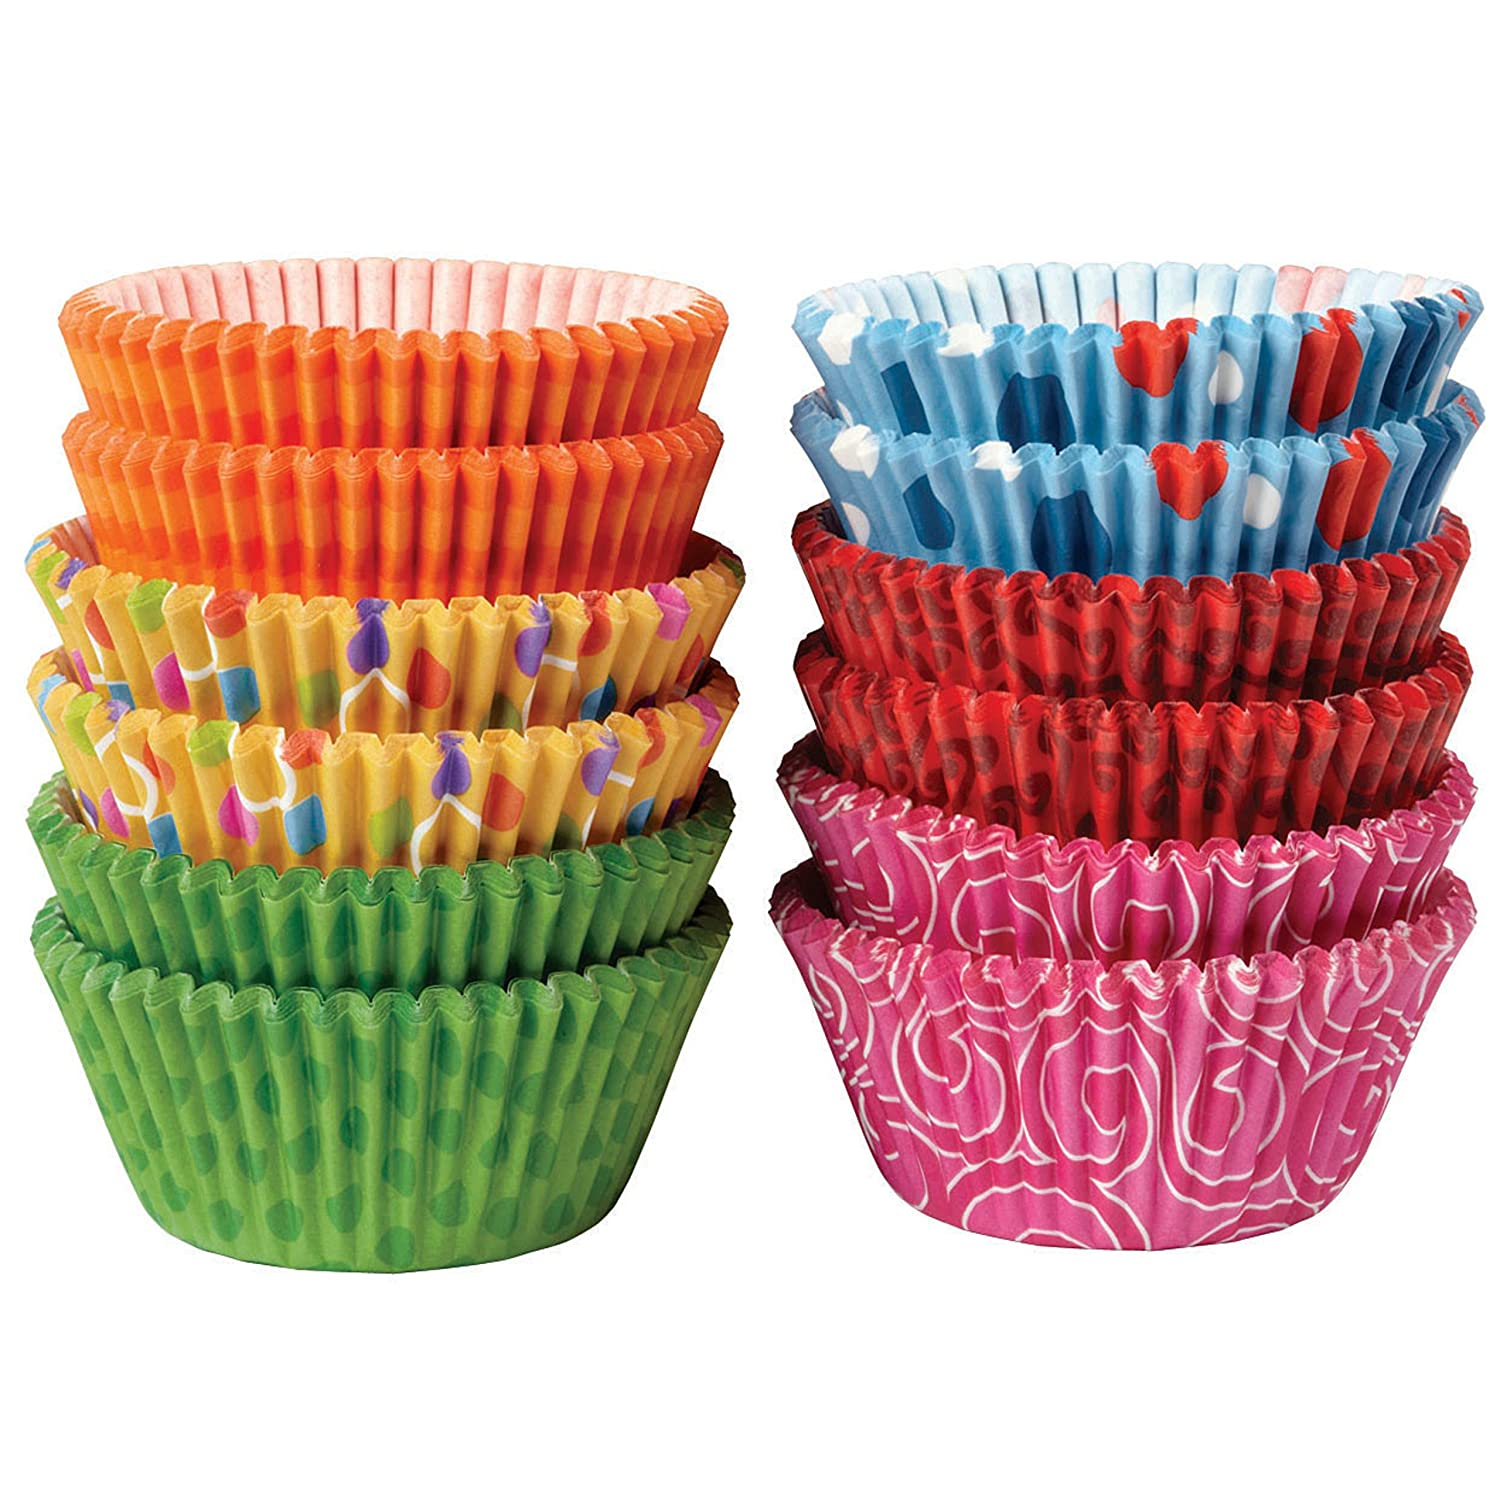 Wilton Seasonal Cupcake Liners, 300-Count